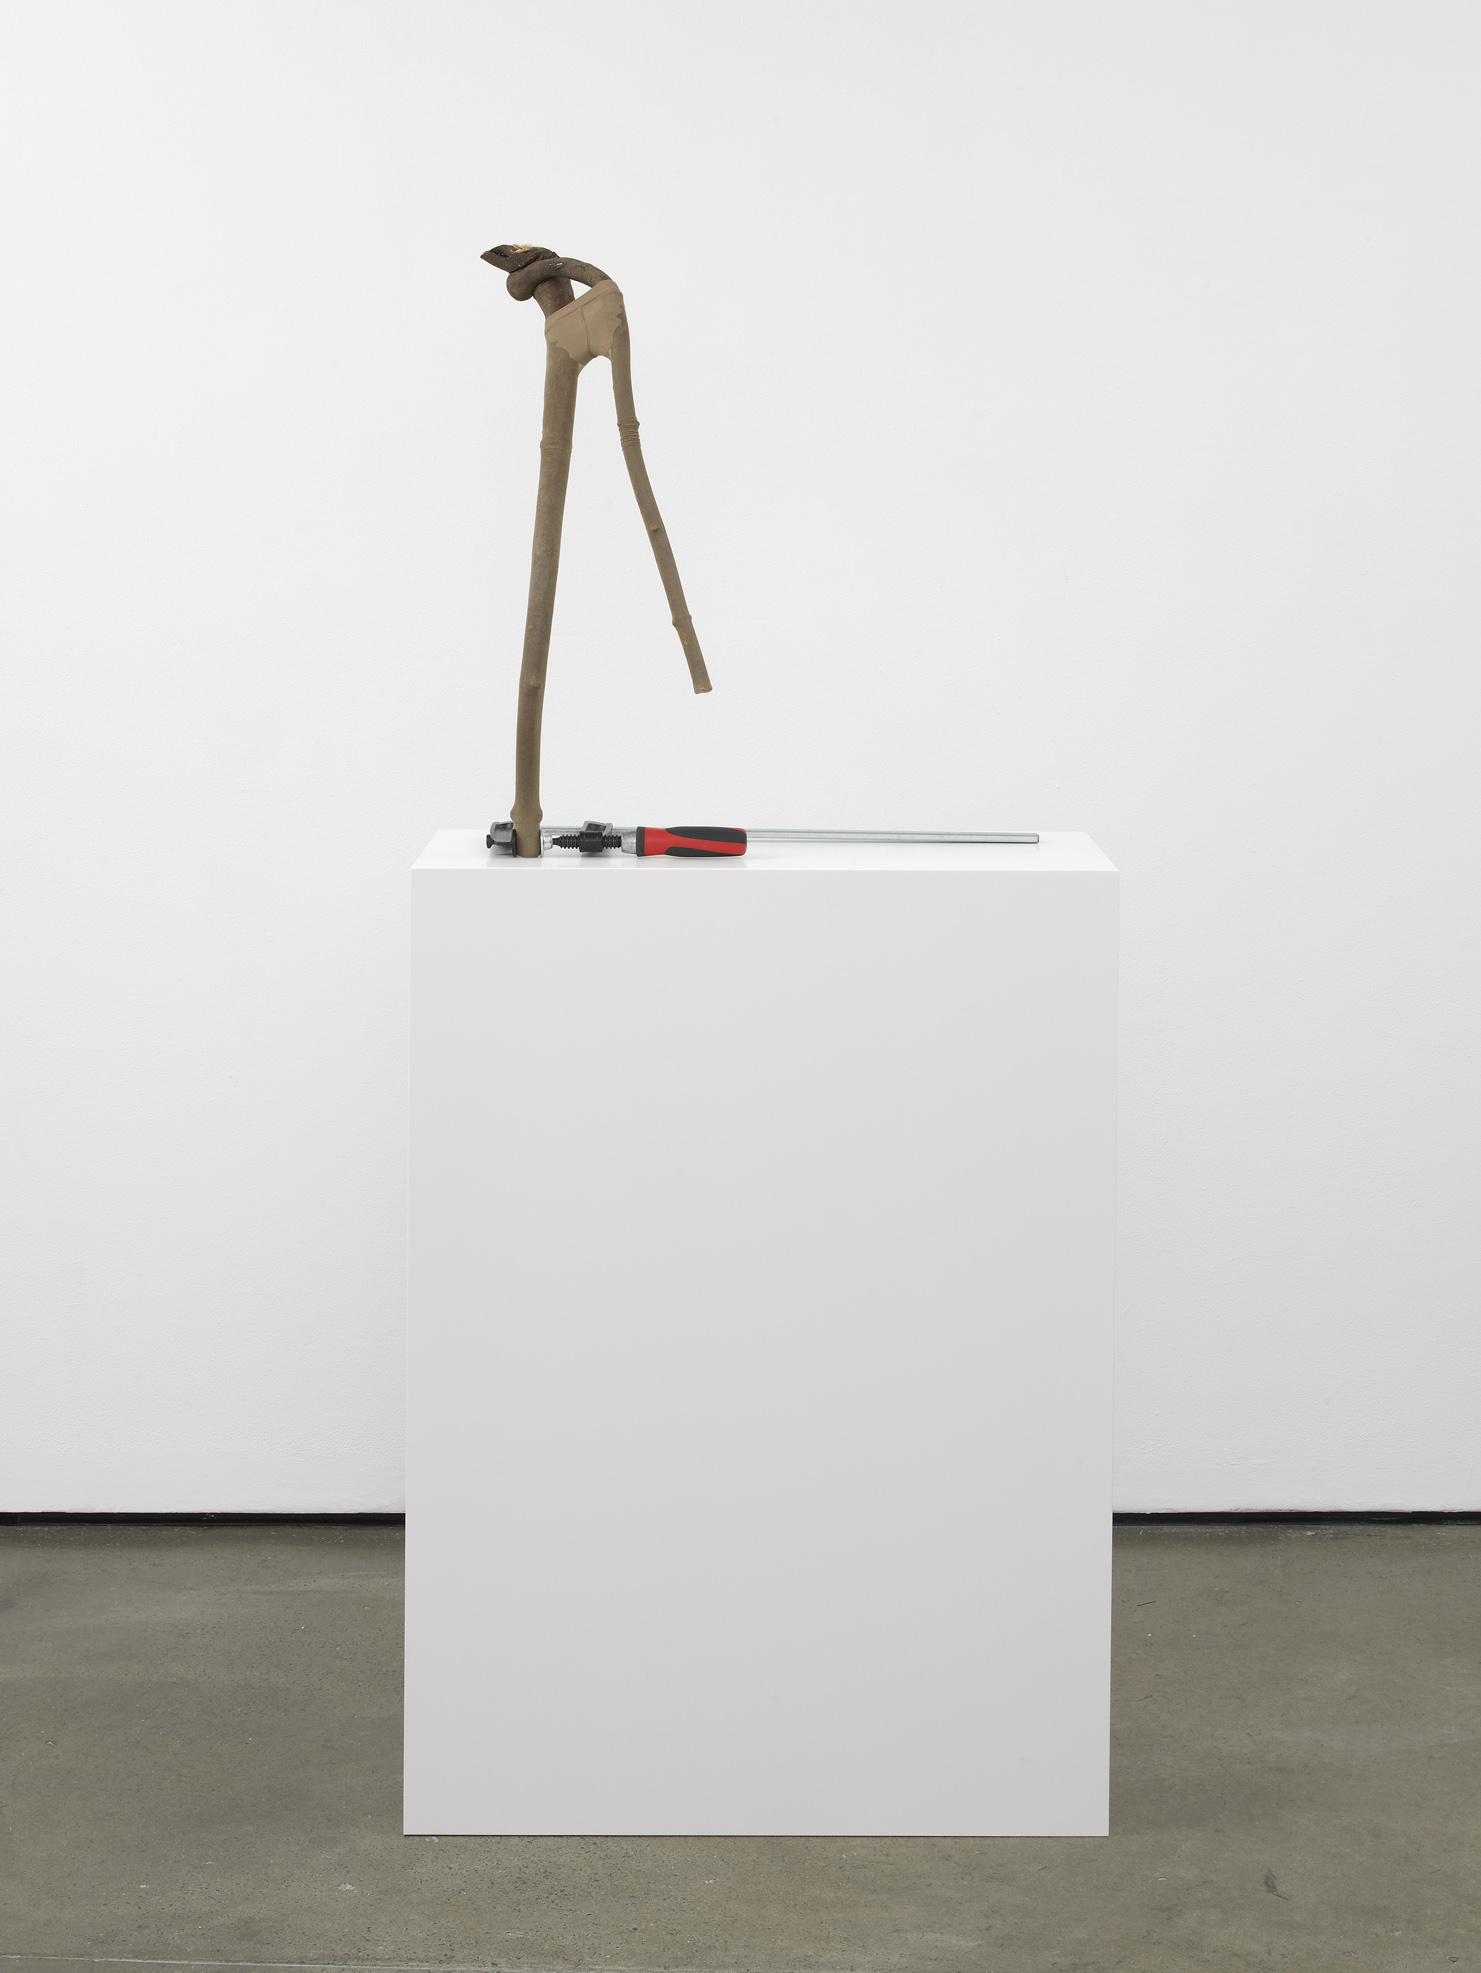 Twiggy 2012 Branch, tights, metal clamp, custom made plinth 68 x 62 x 38 cm / 26.7 x 24.4 x 14.9 in Plinth: 103 x 72 x 32 cm / 40.5 x 28.3 x 12.5 in